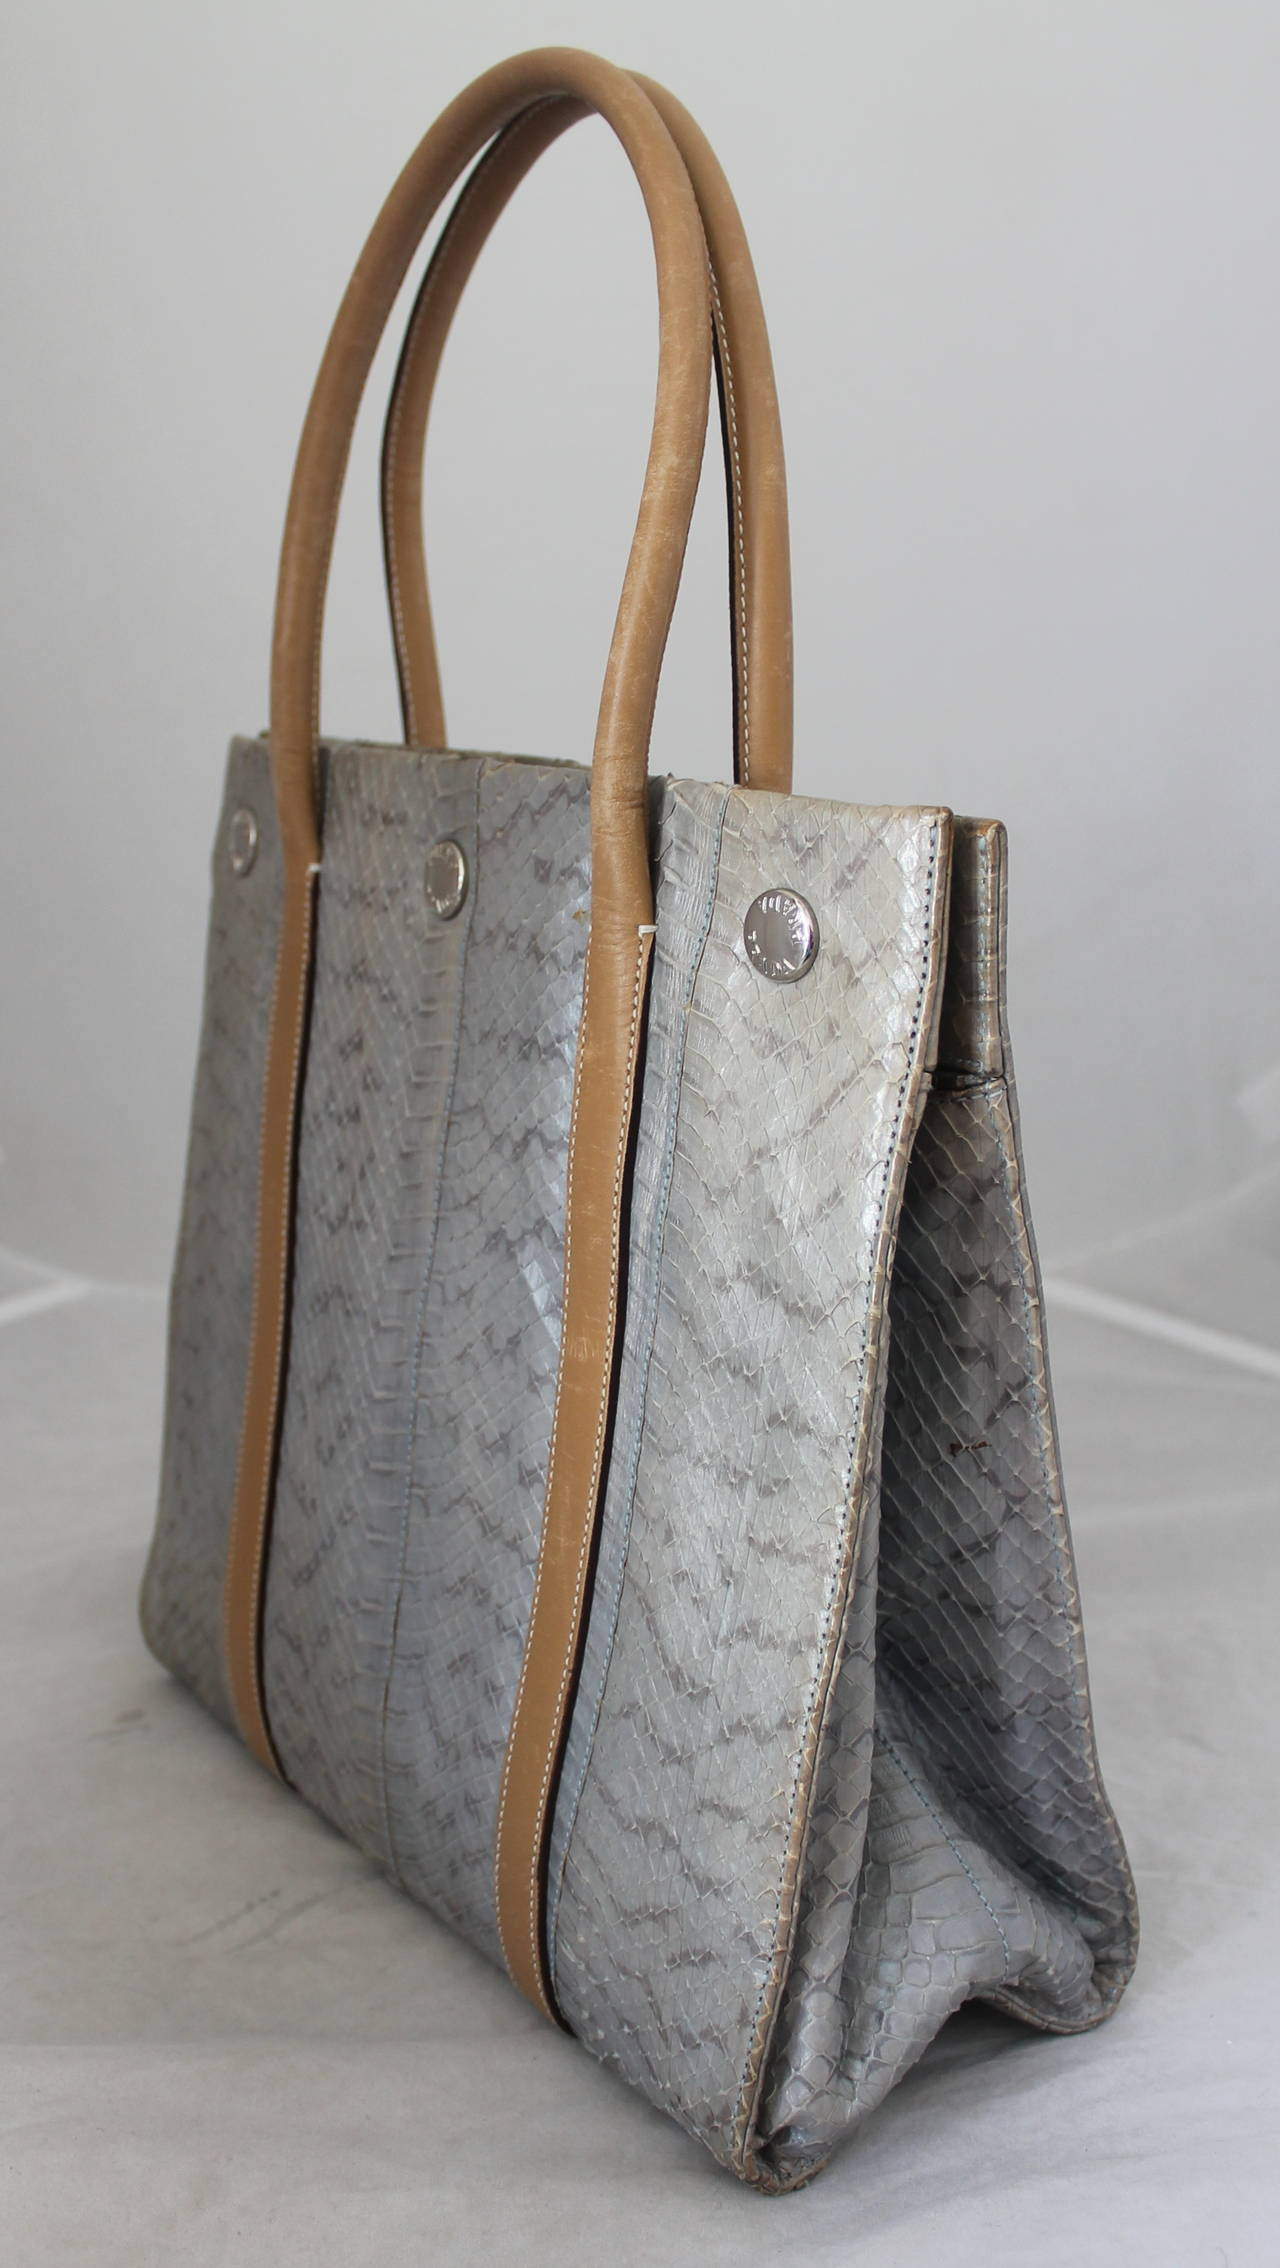 Prada Silver Snakeskin & Beige Leather Handbag 2